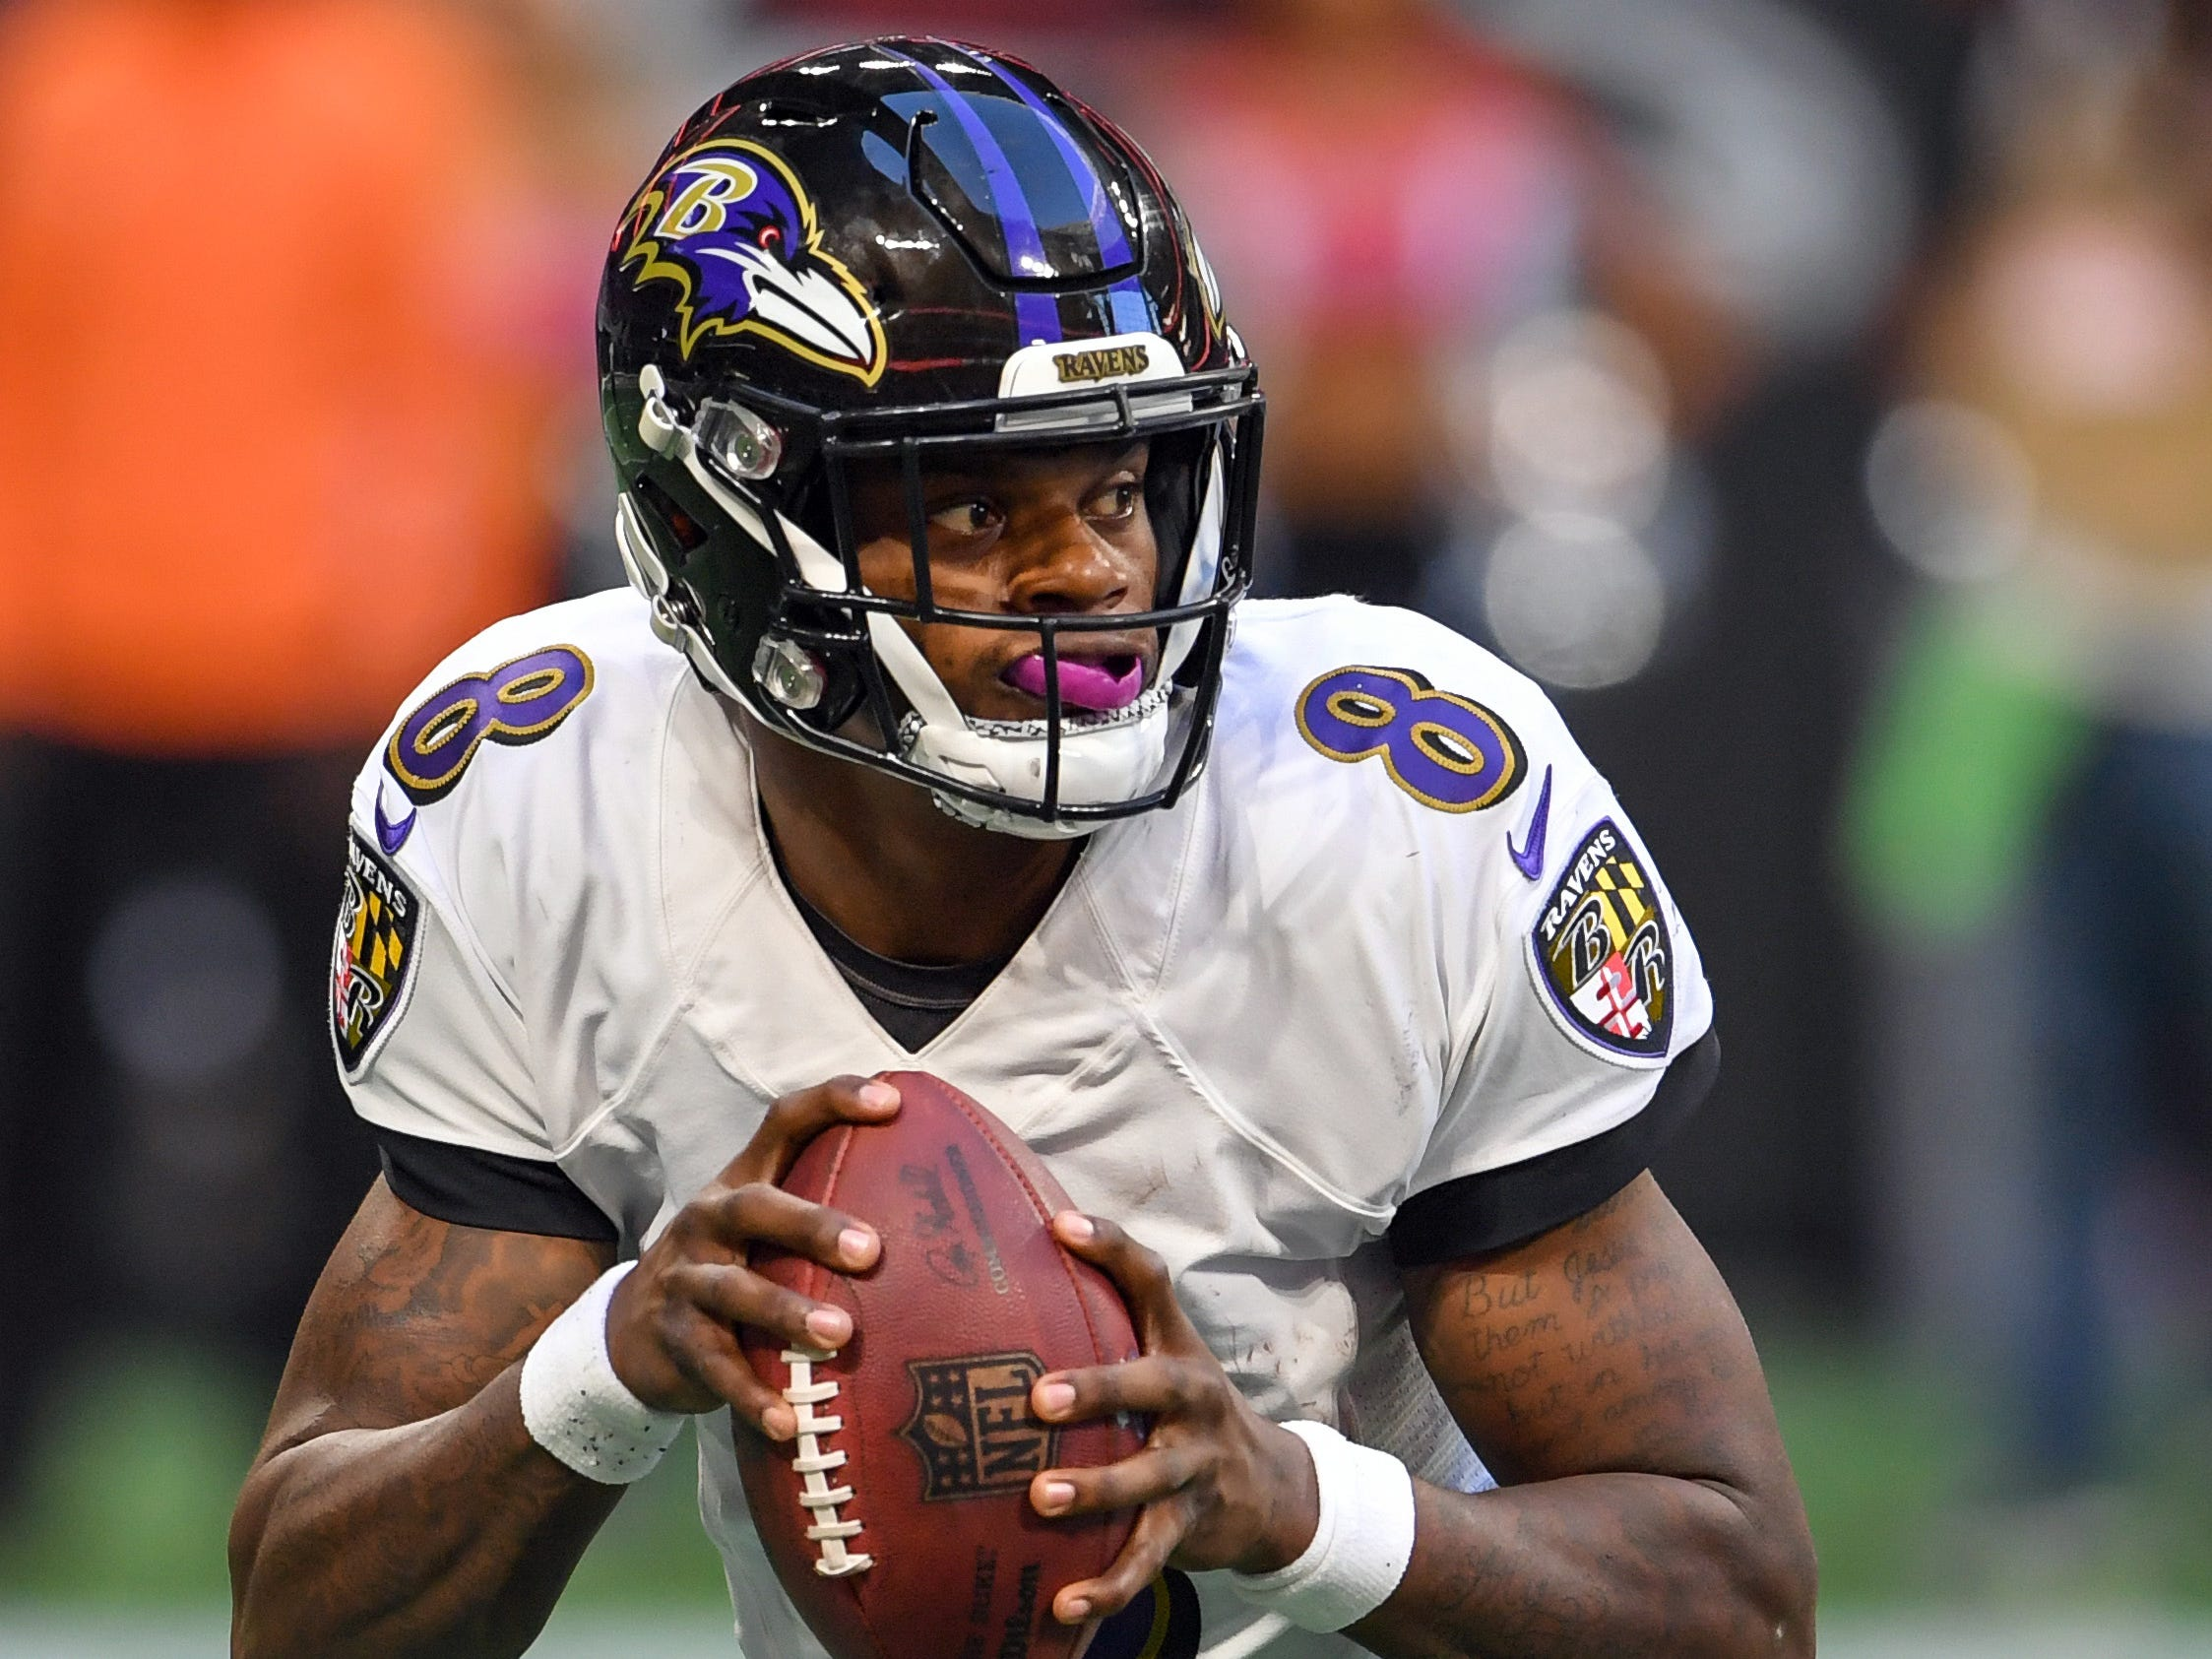 13. Ravens (13): Lamar Jackson's 73.5 QB rating is ugly ... but it's also better than all of his fellow 2018 first rounders with exception of Baker Mayfield.